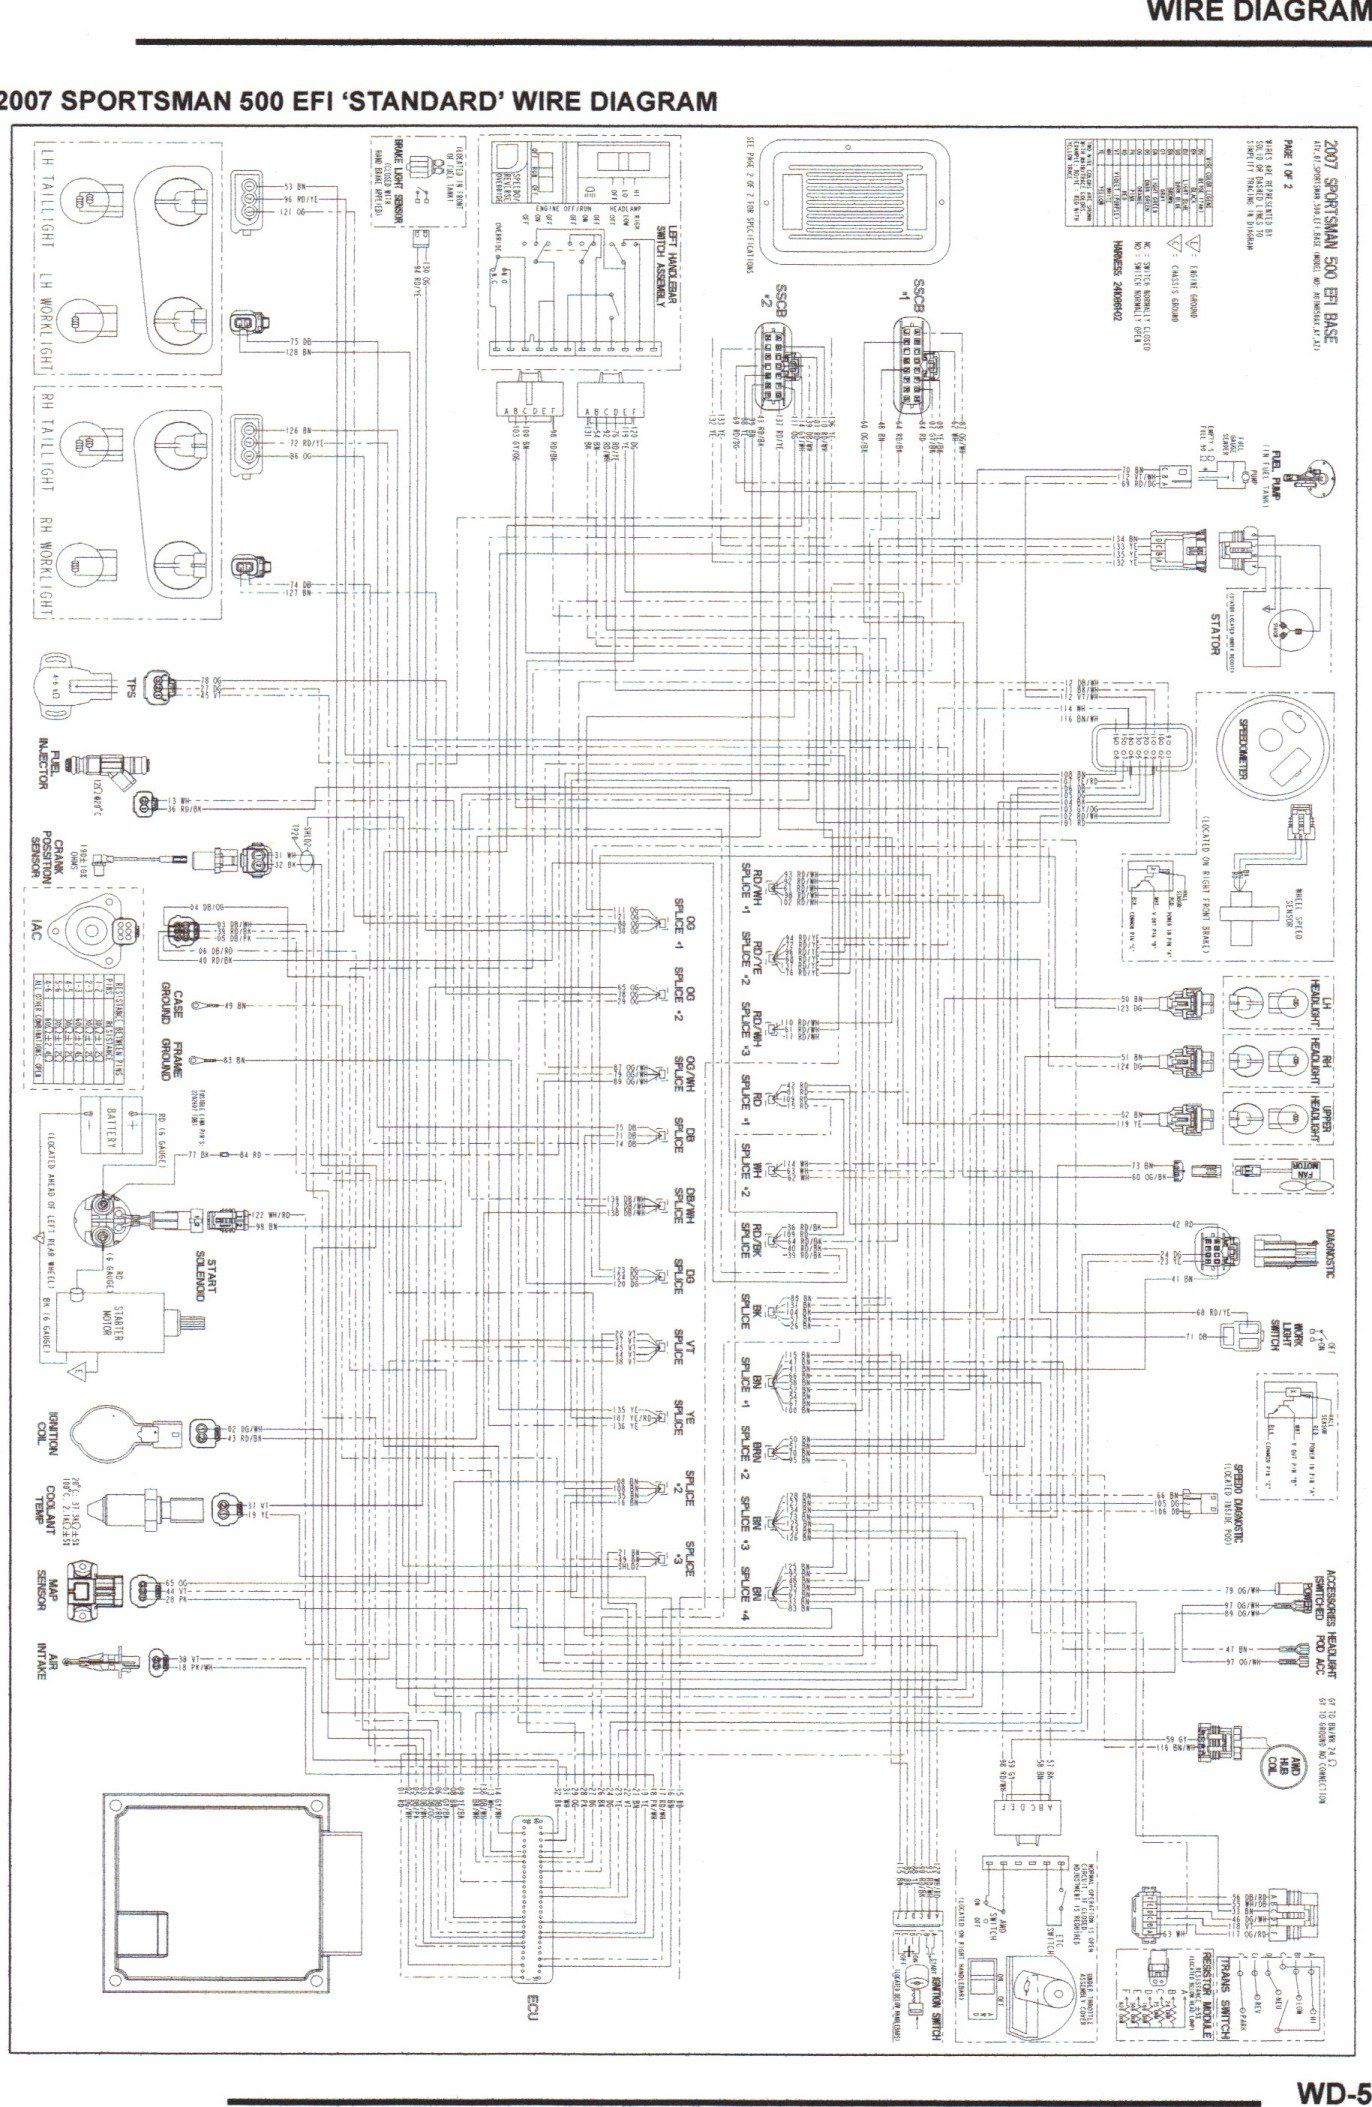 small resolution of 05 polaris atv wiring diagram wiring diagram for you polaris sportsman 500 wiring schematics 02 polaris